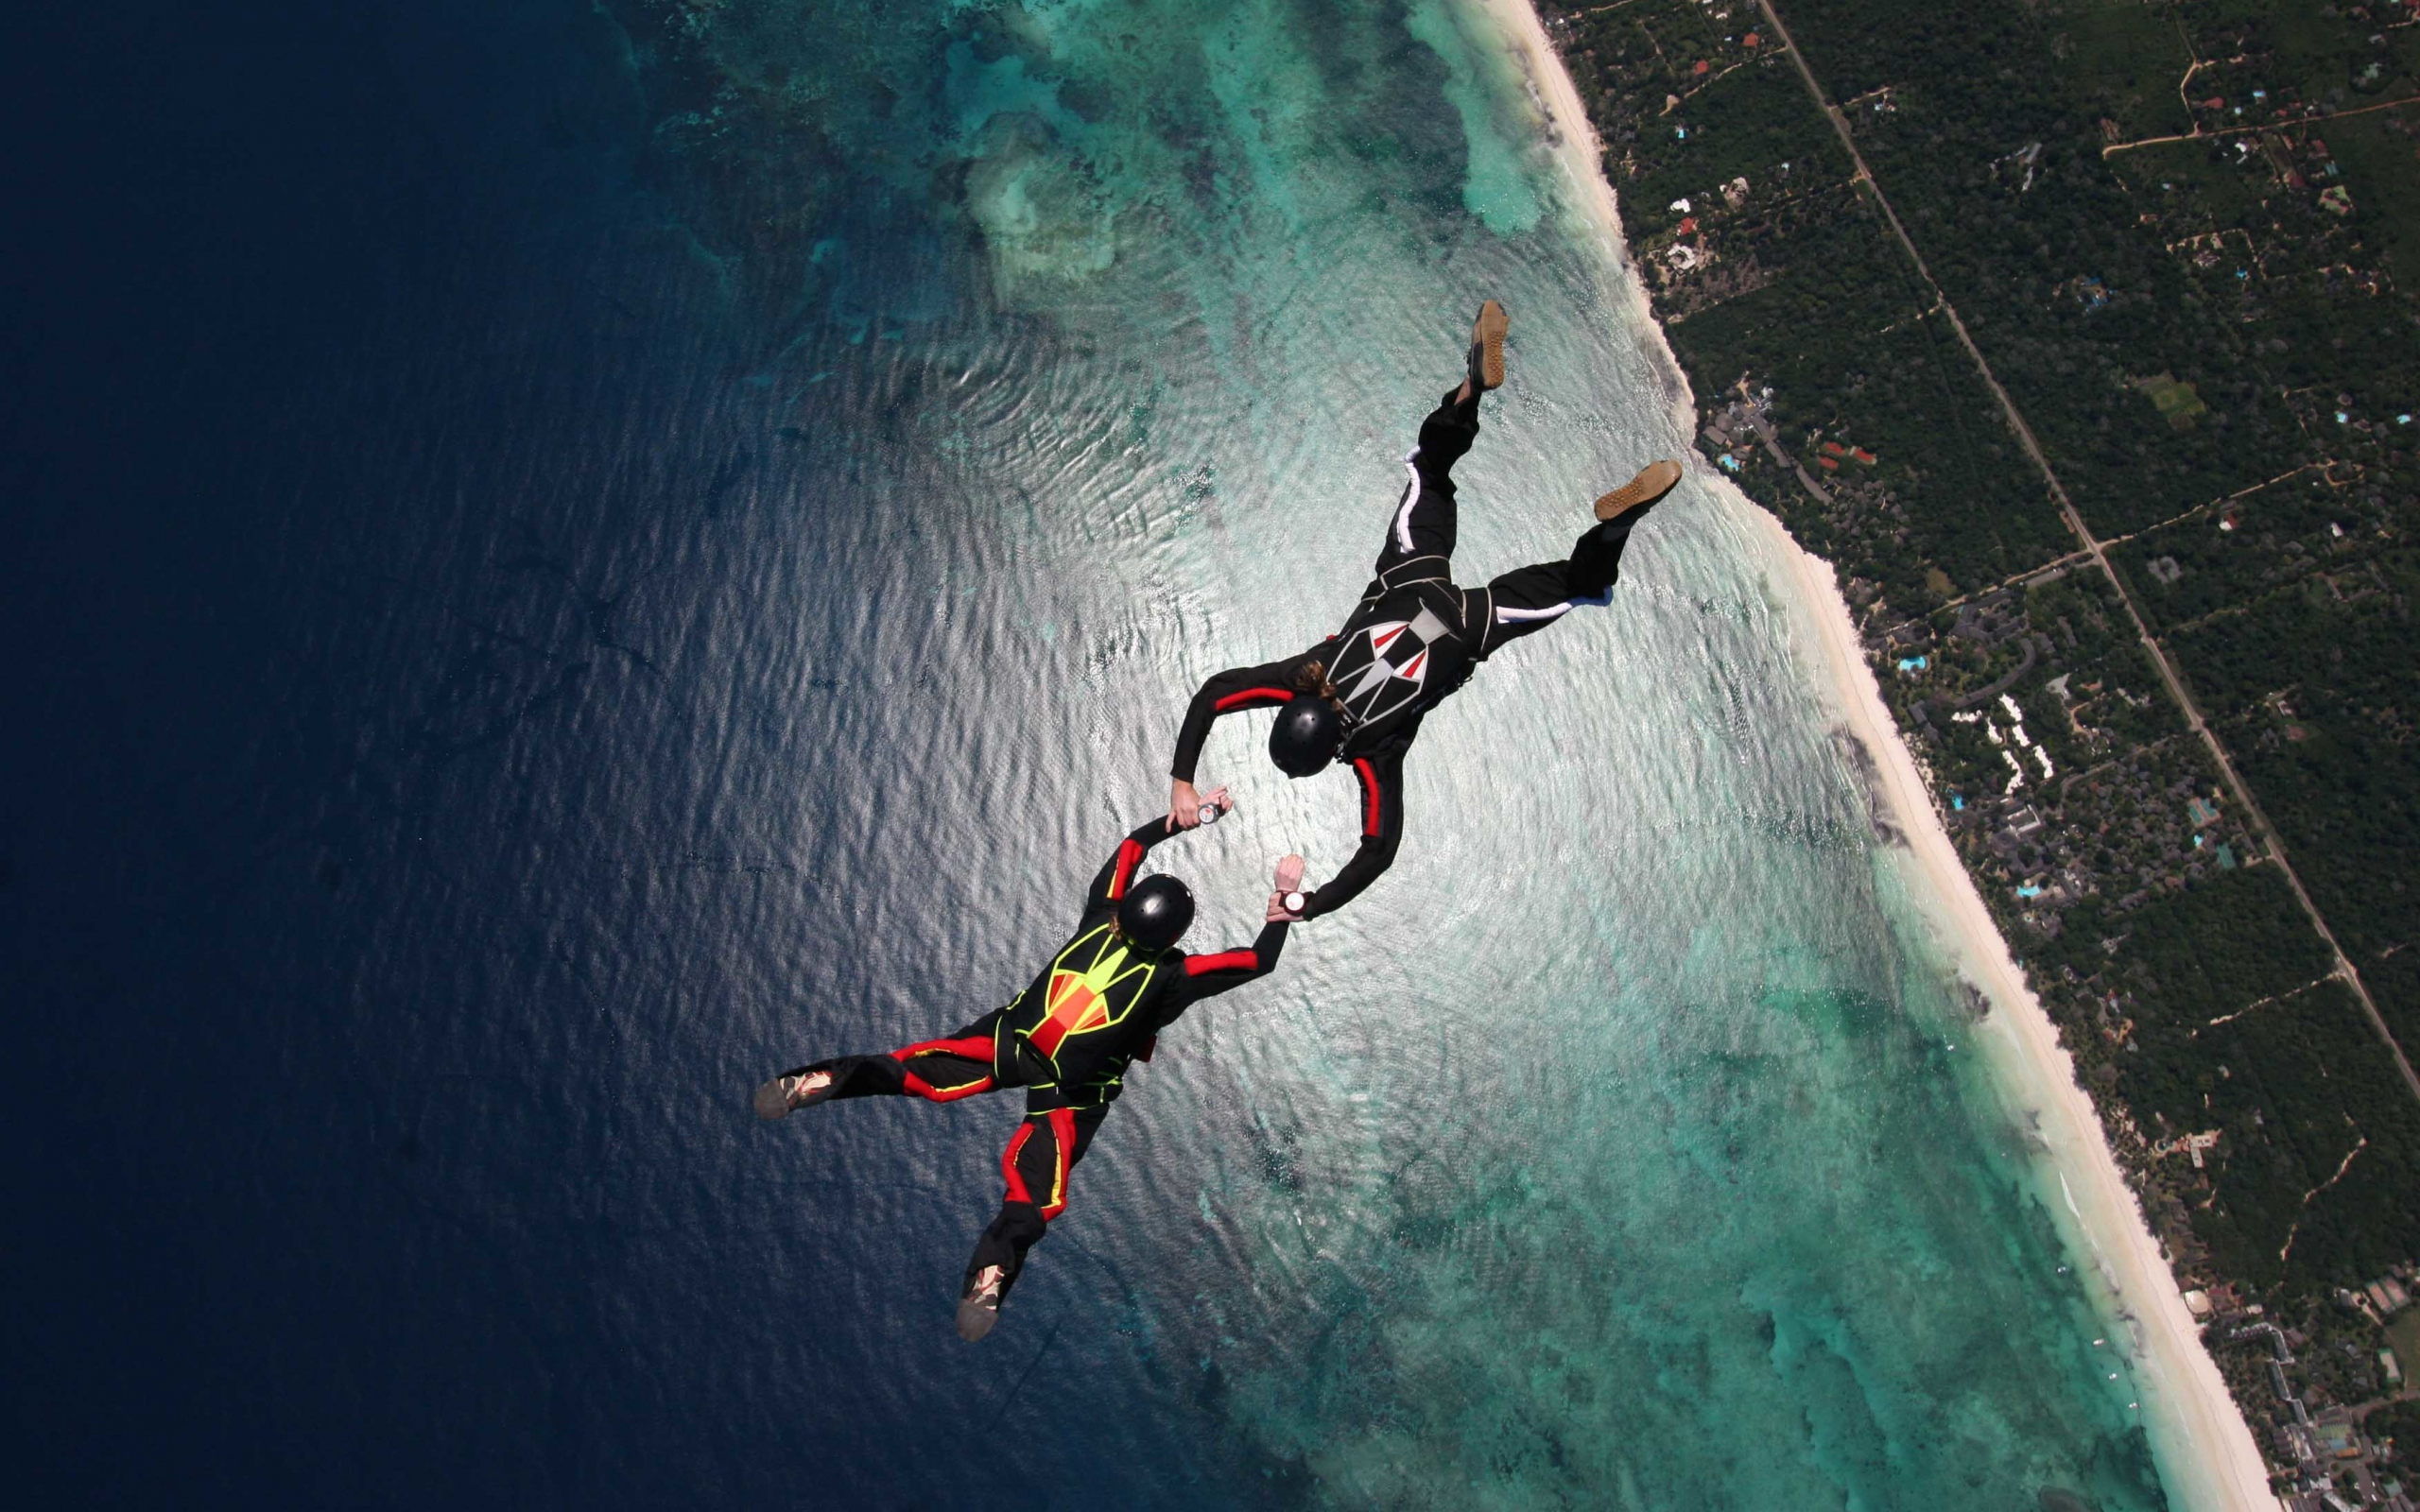 skydiving wallpaper background hd 53415